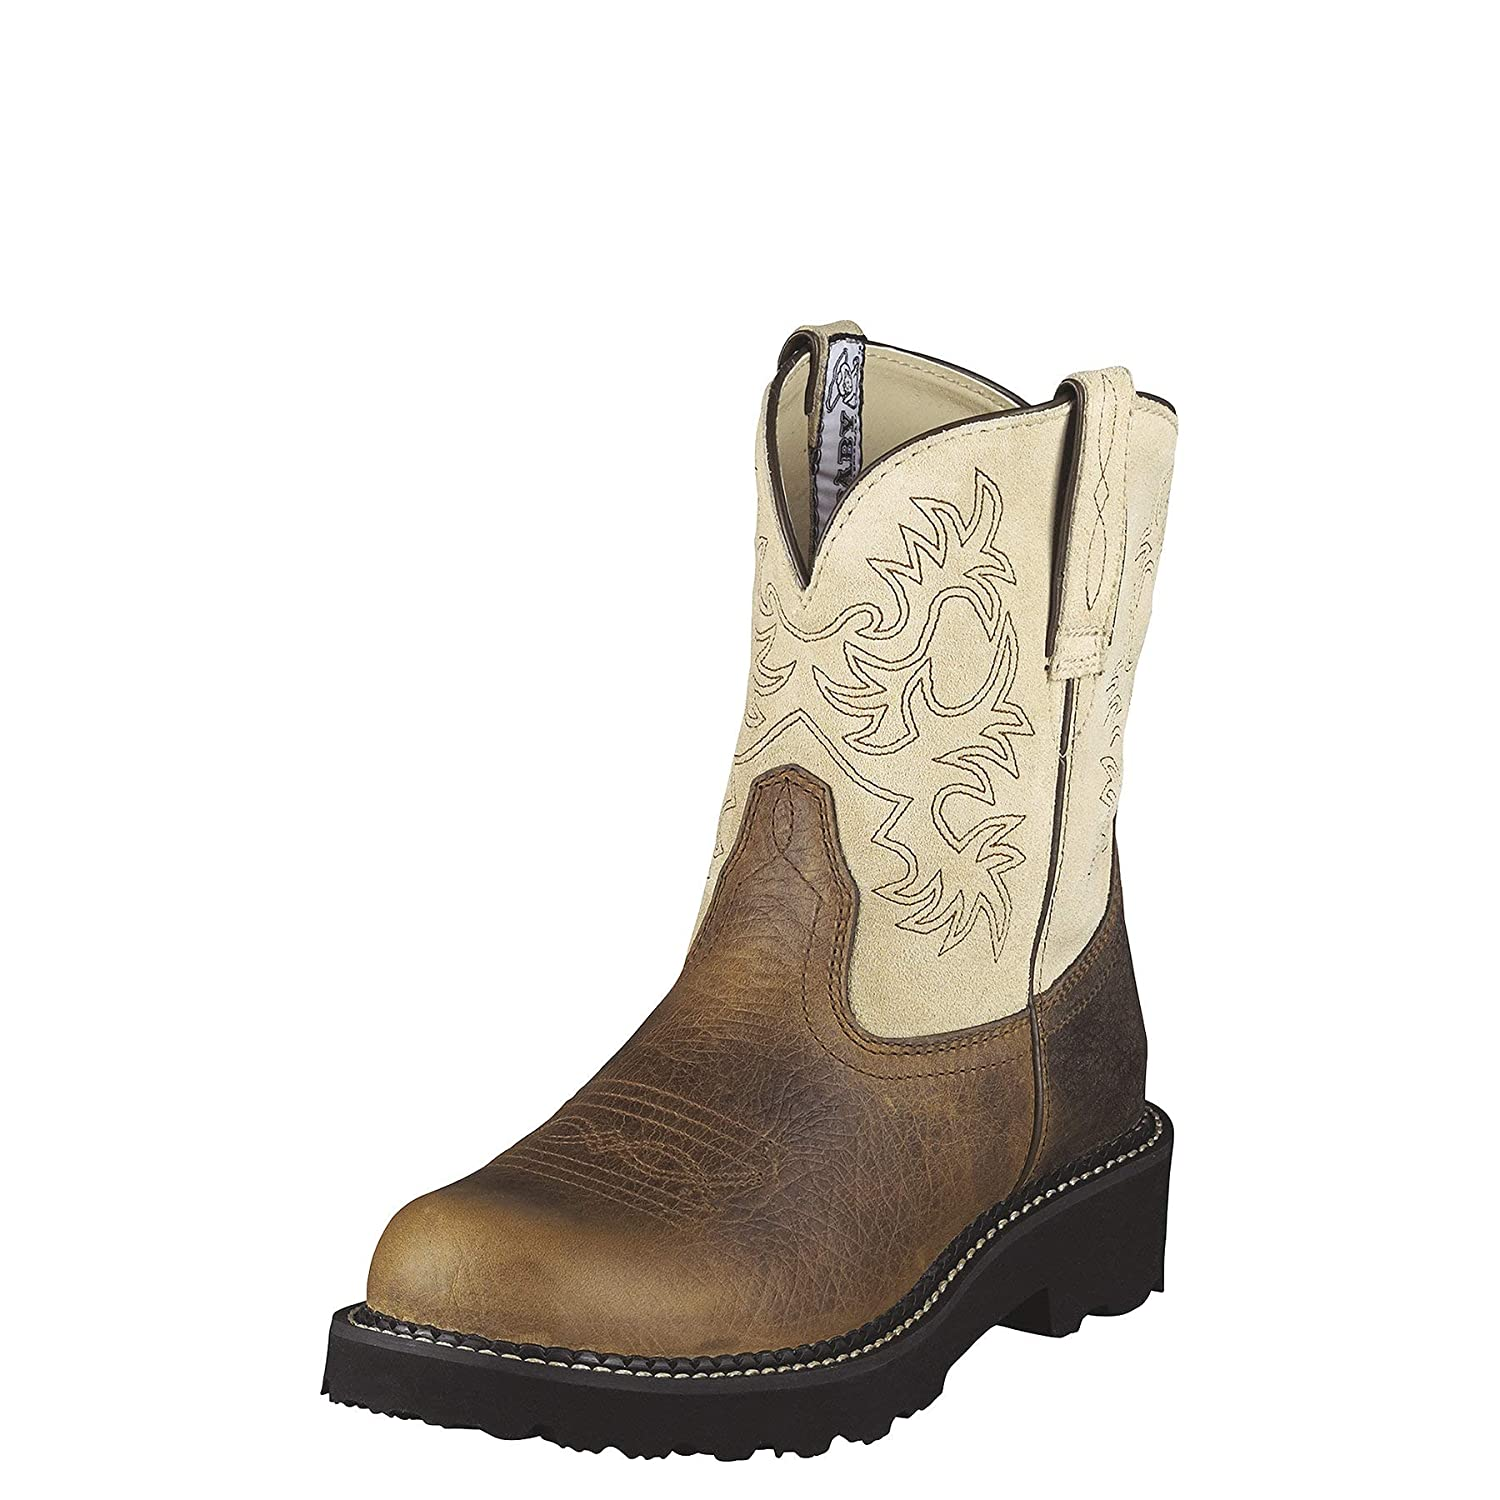 eb02339ed58 Ariat Women's Fatbaby Heritage Western Cowboy Boot